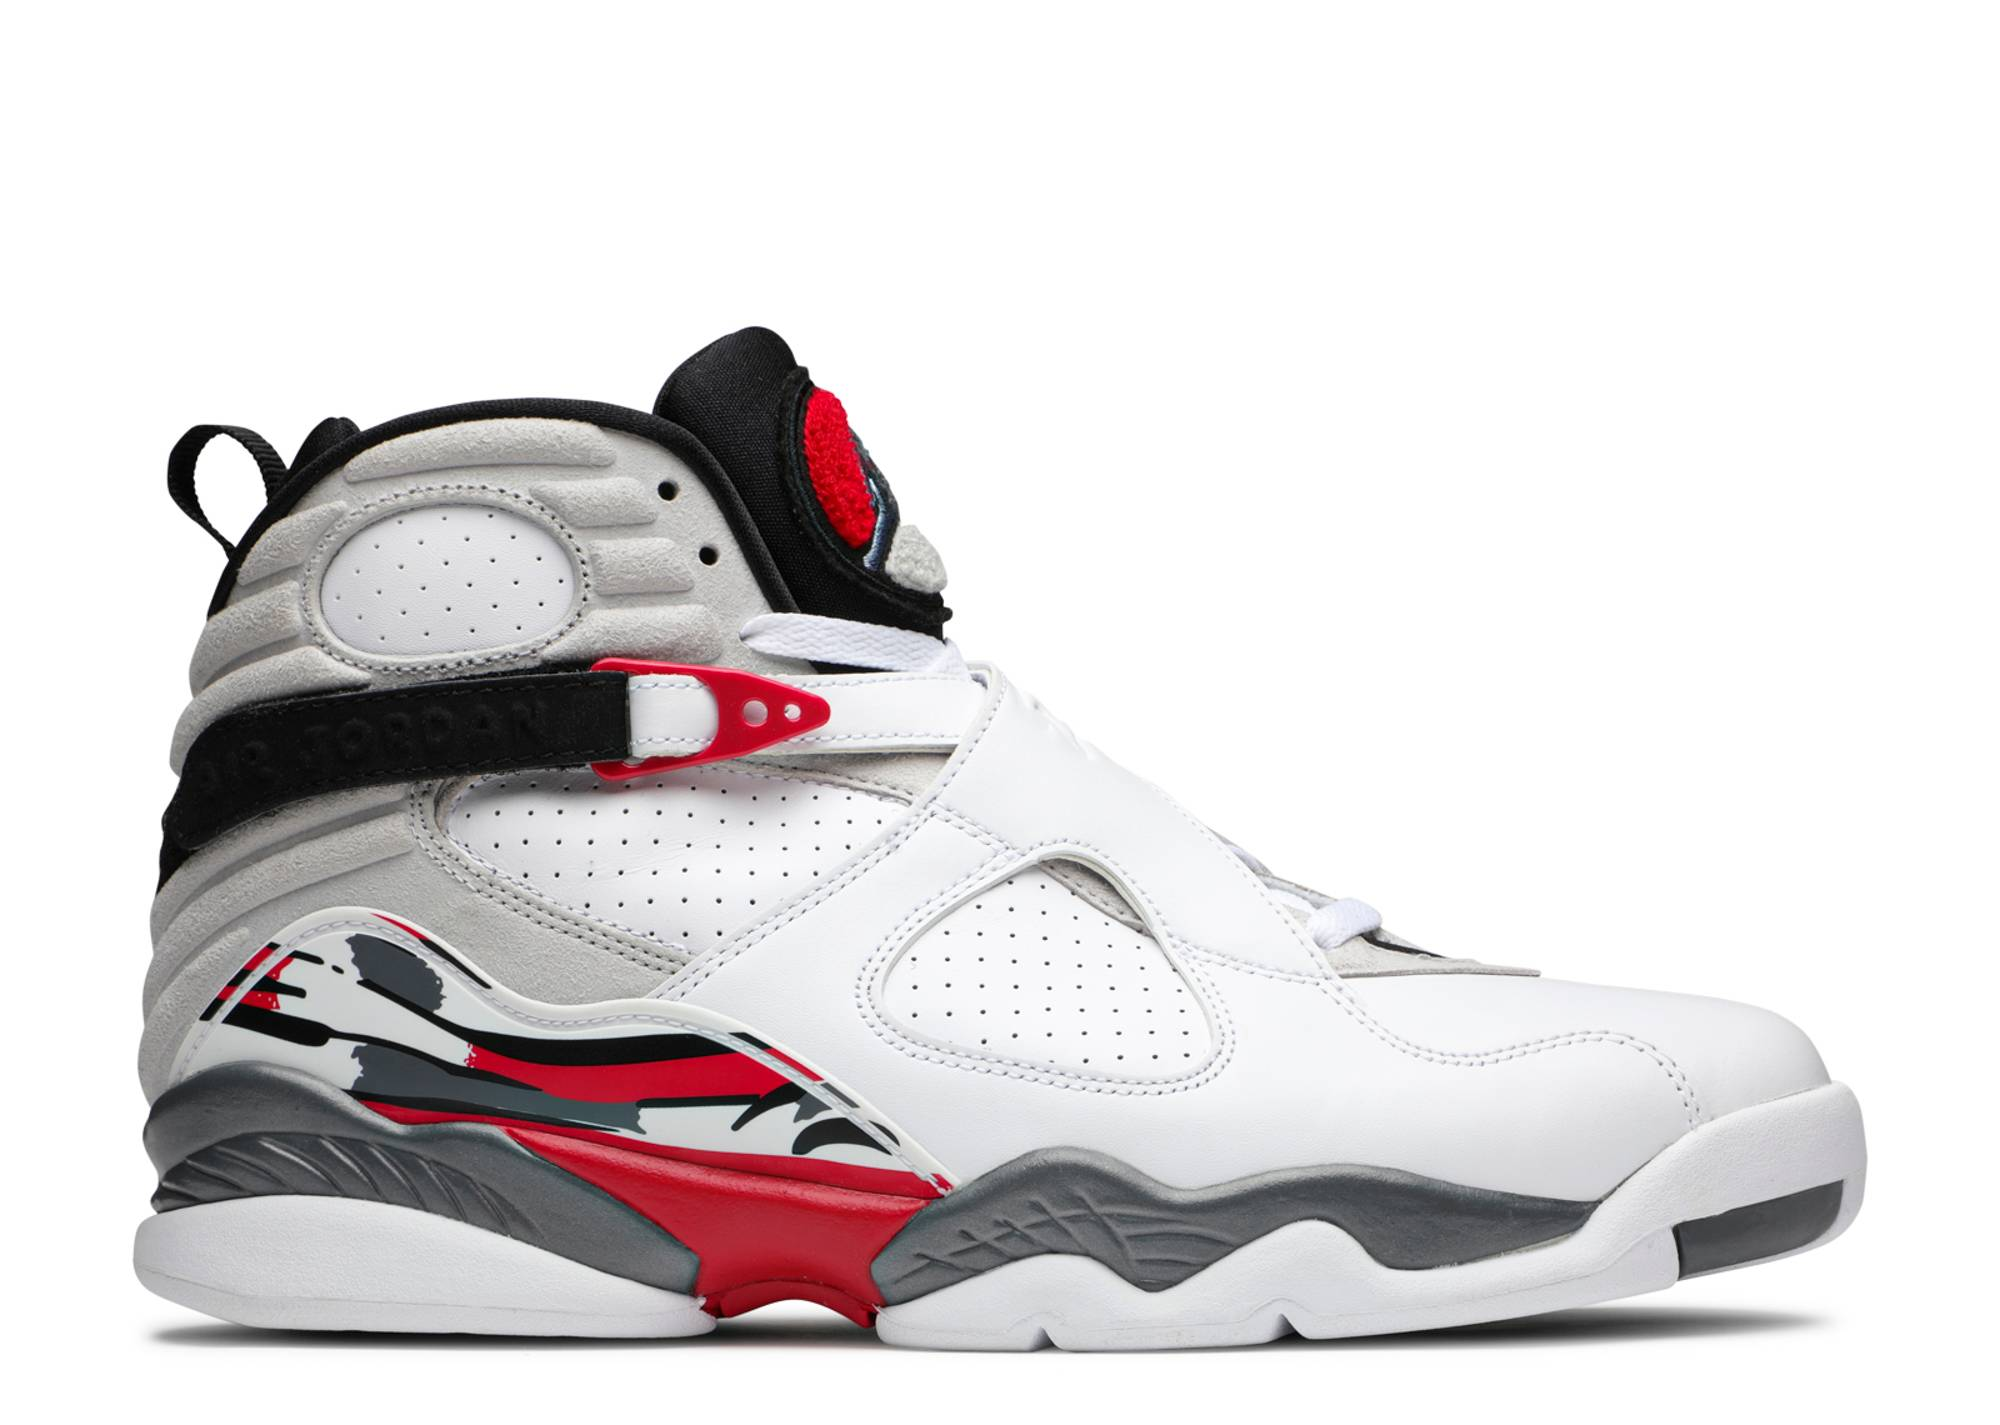 buy authentic jordan retros online stopwatch